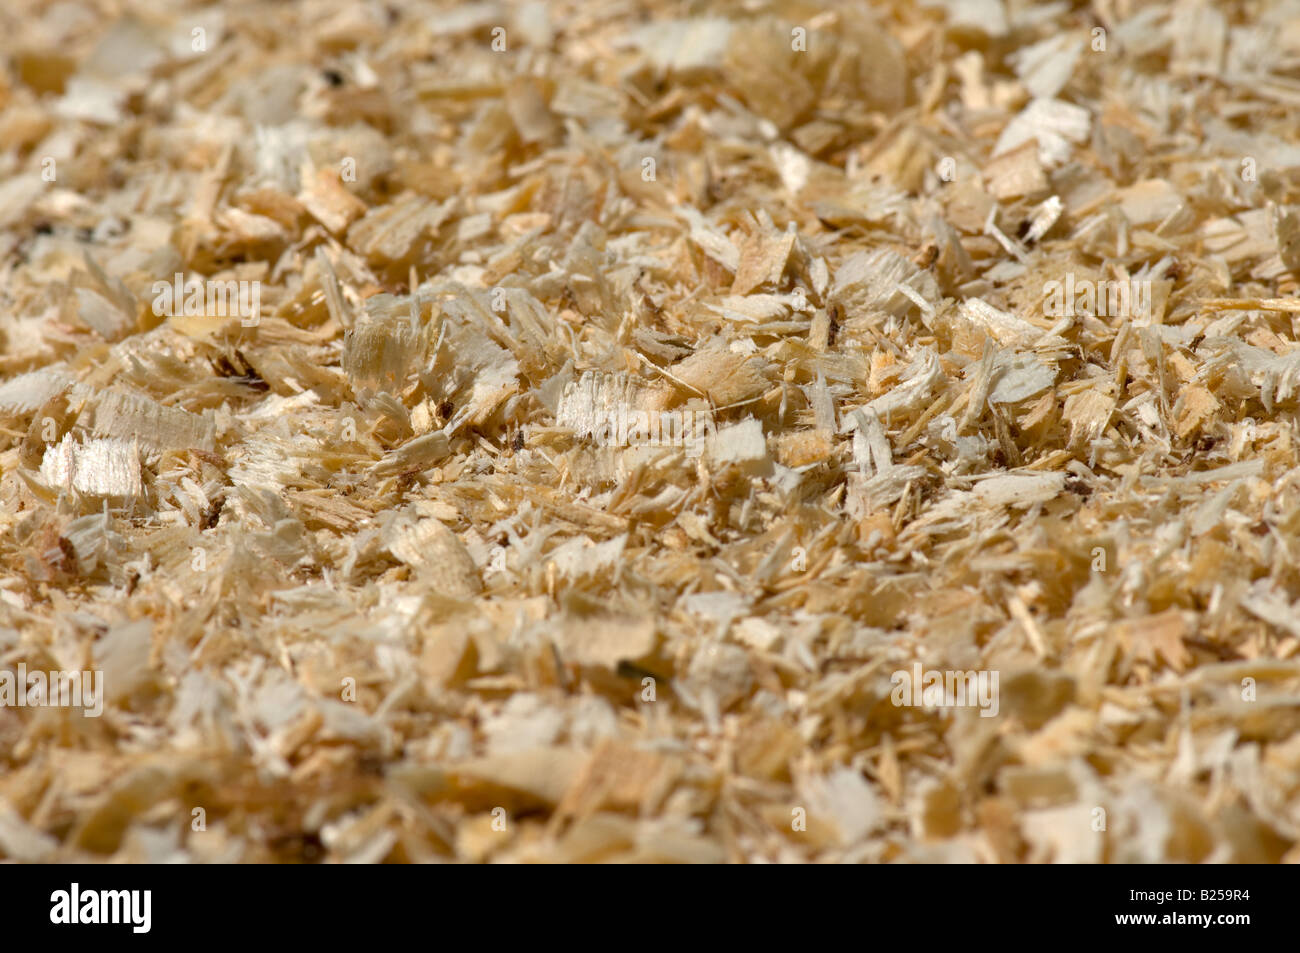 A pile of wooden chips produced by the chain saw, origin eastern softwoods fir and spruce. - Stock Image